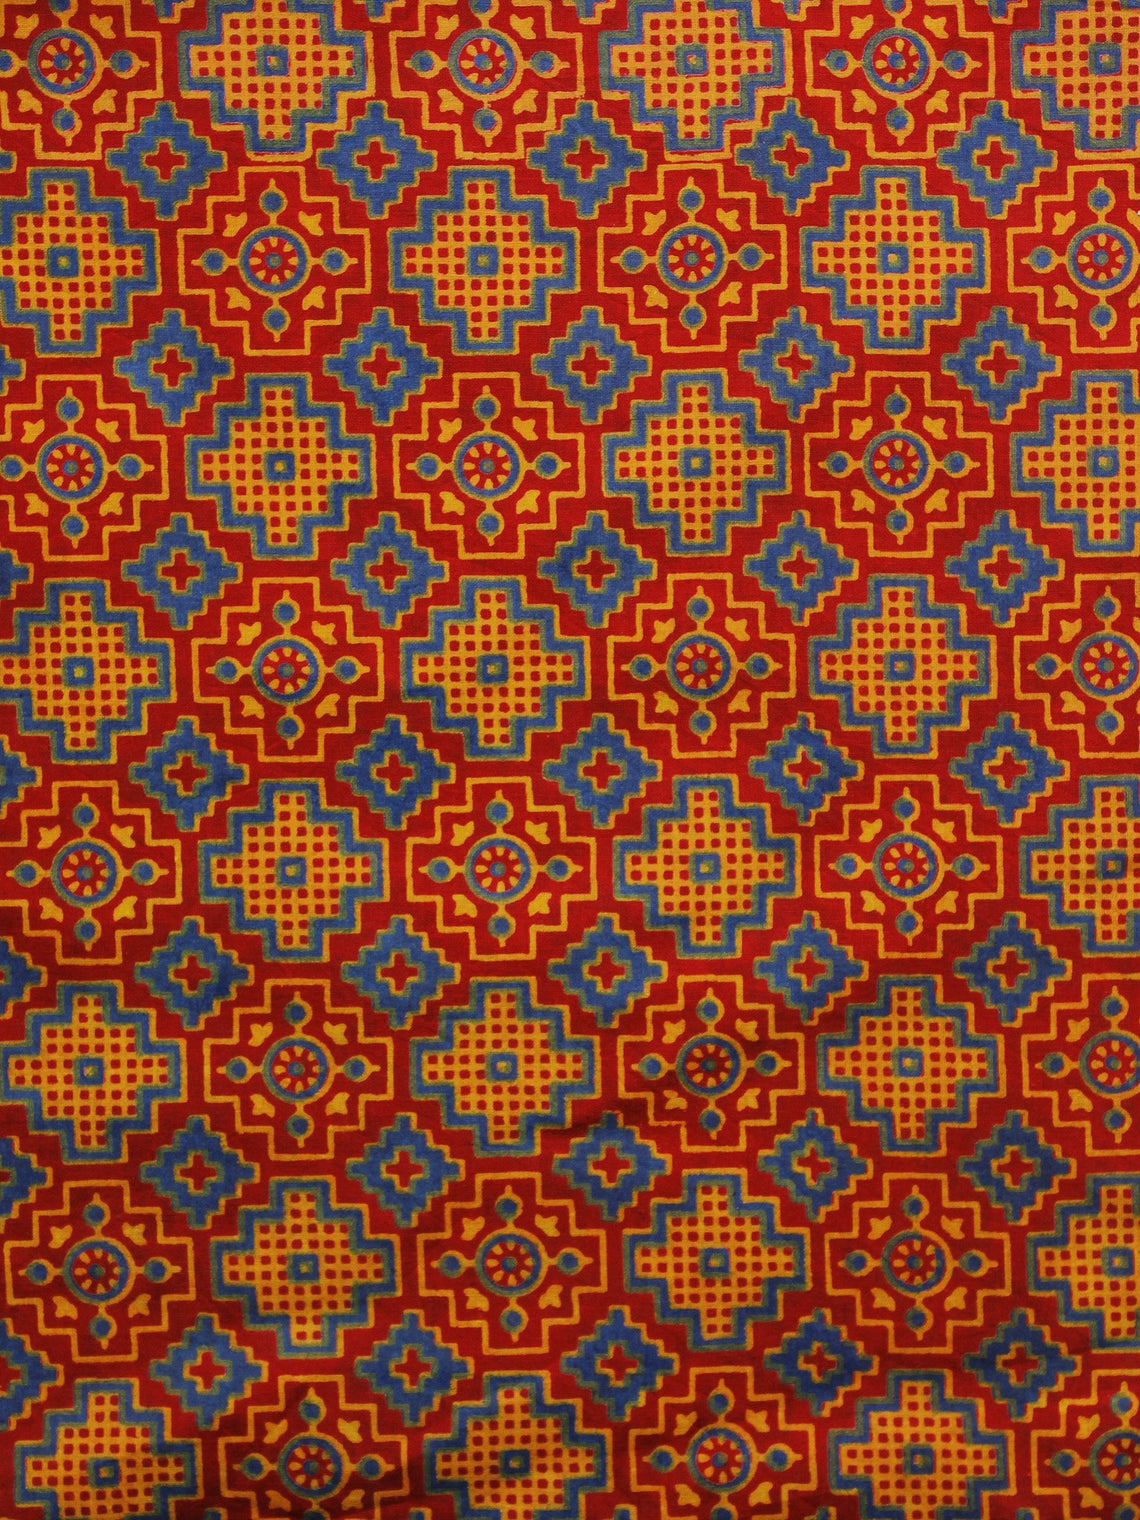 Red Blue Yellow Ajrakh Block Printed Cotton Fabric Per Meter - F003F979